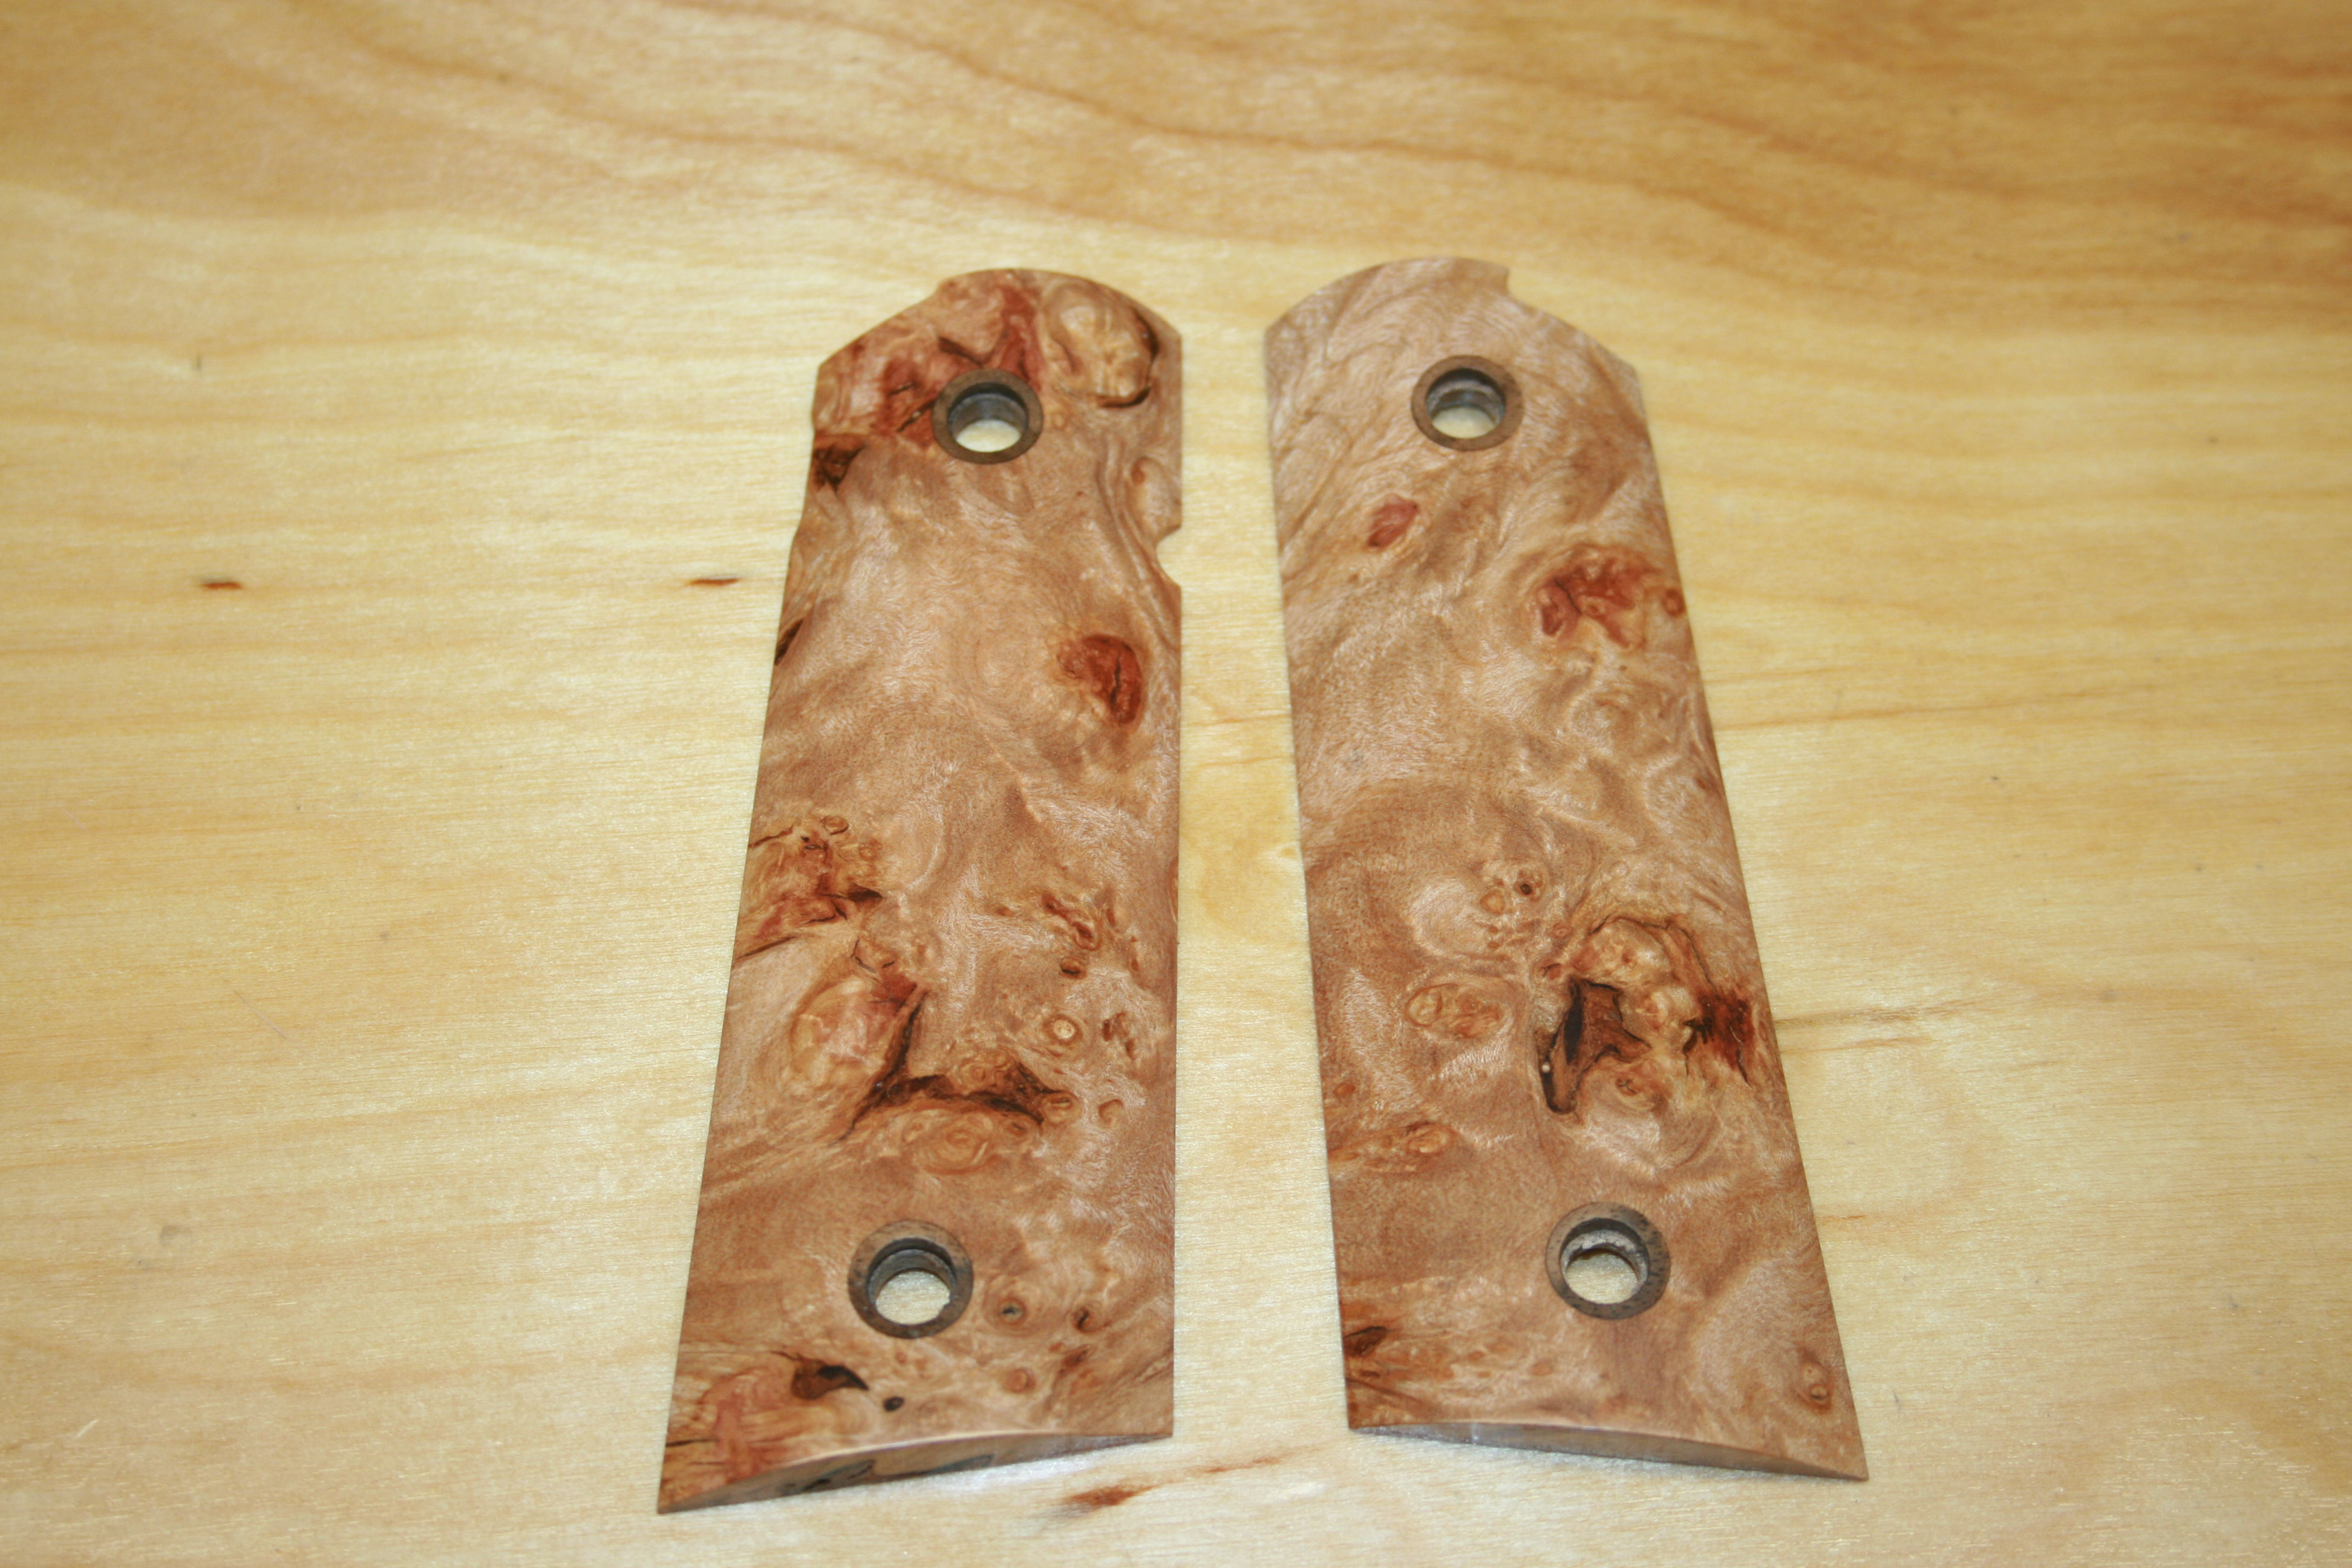 SUGMBS1N - 1911 C&S Premium Handmade Smooth Natural Maple Burl Grips